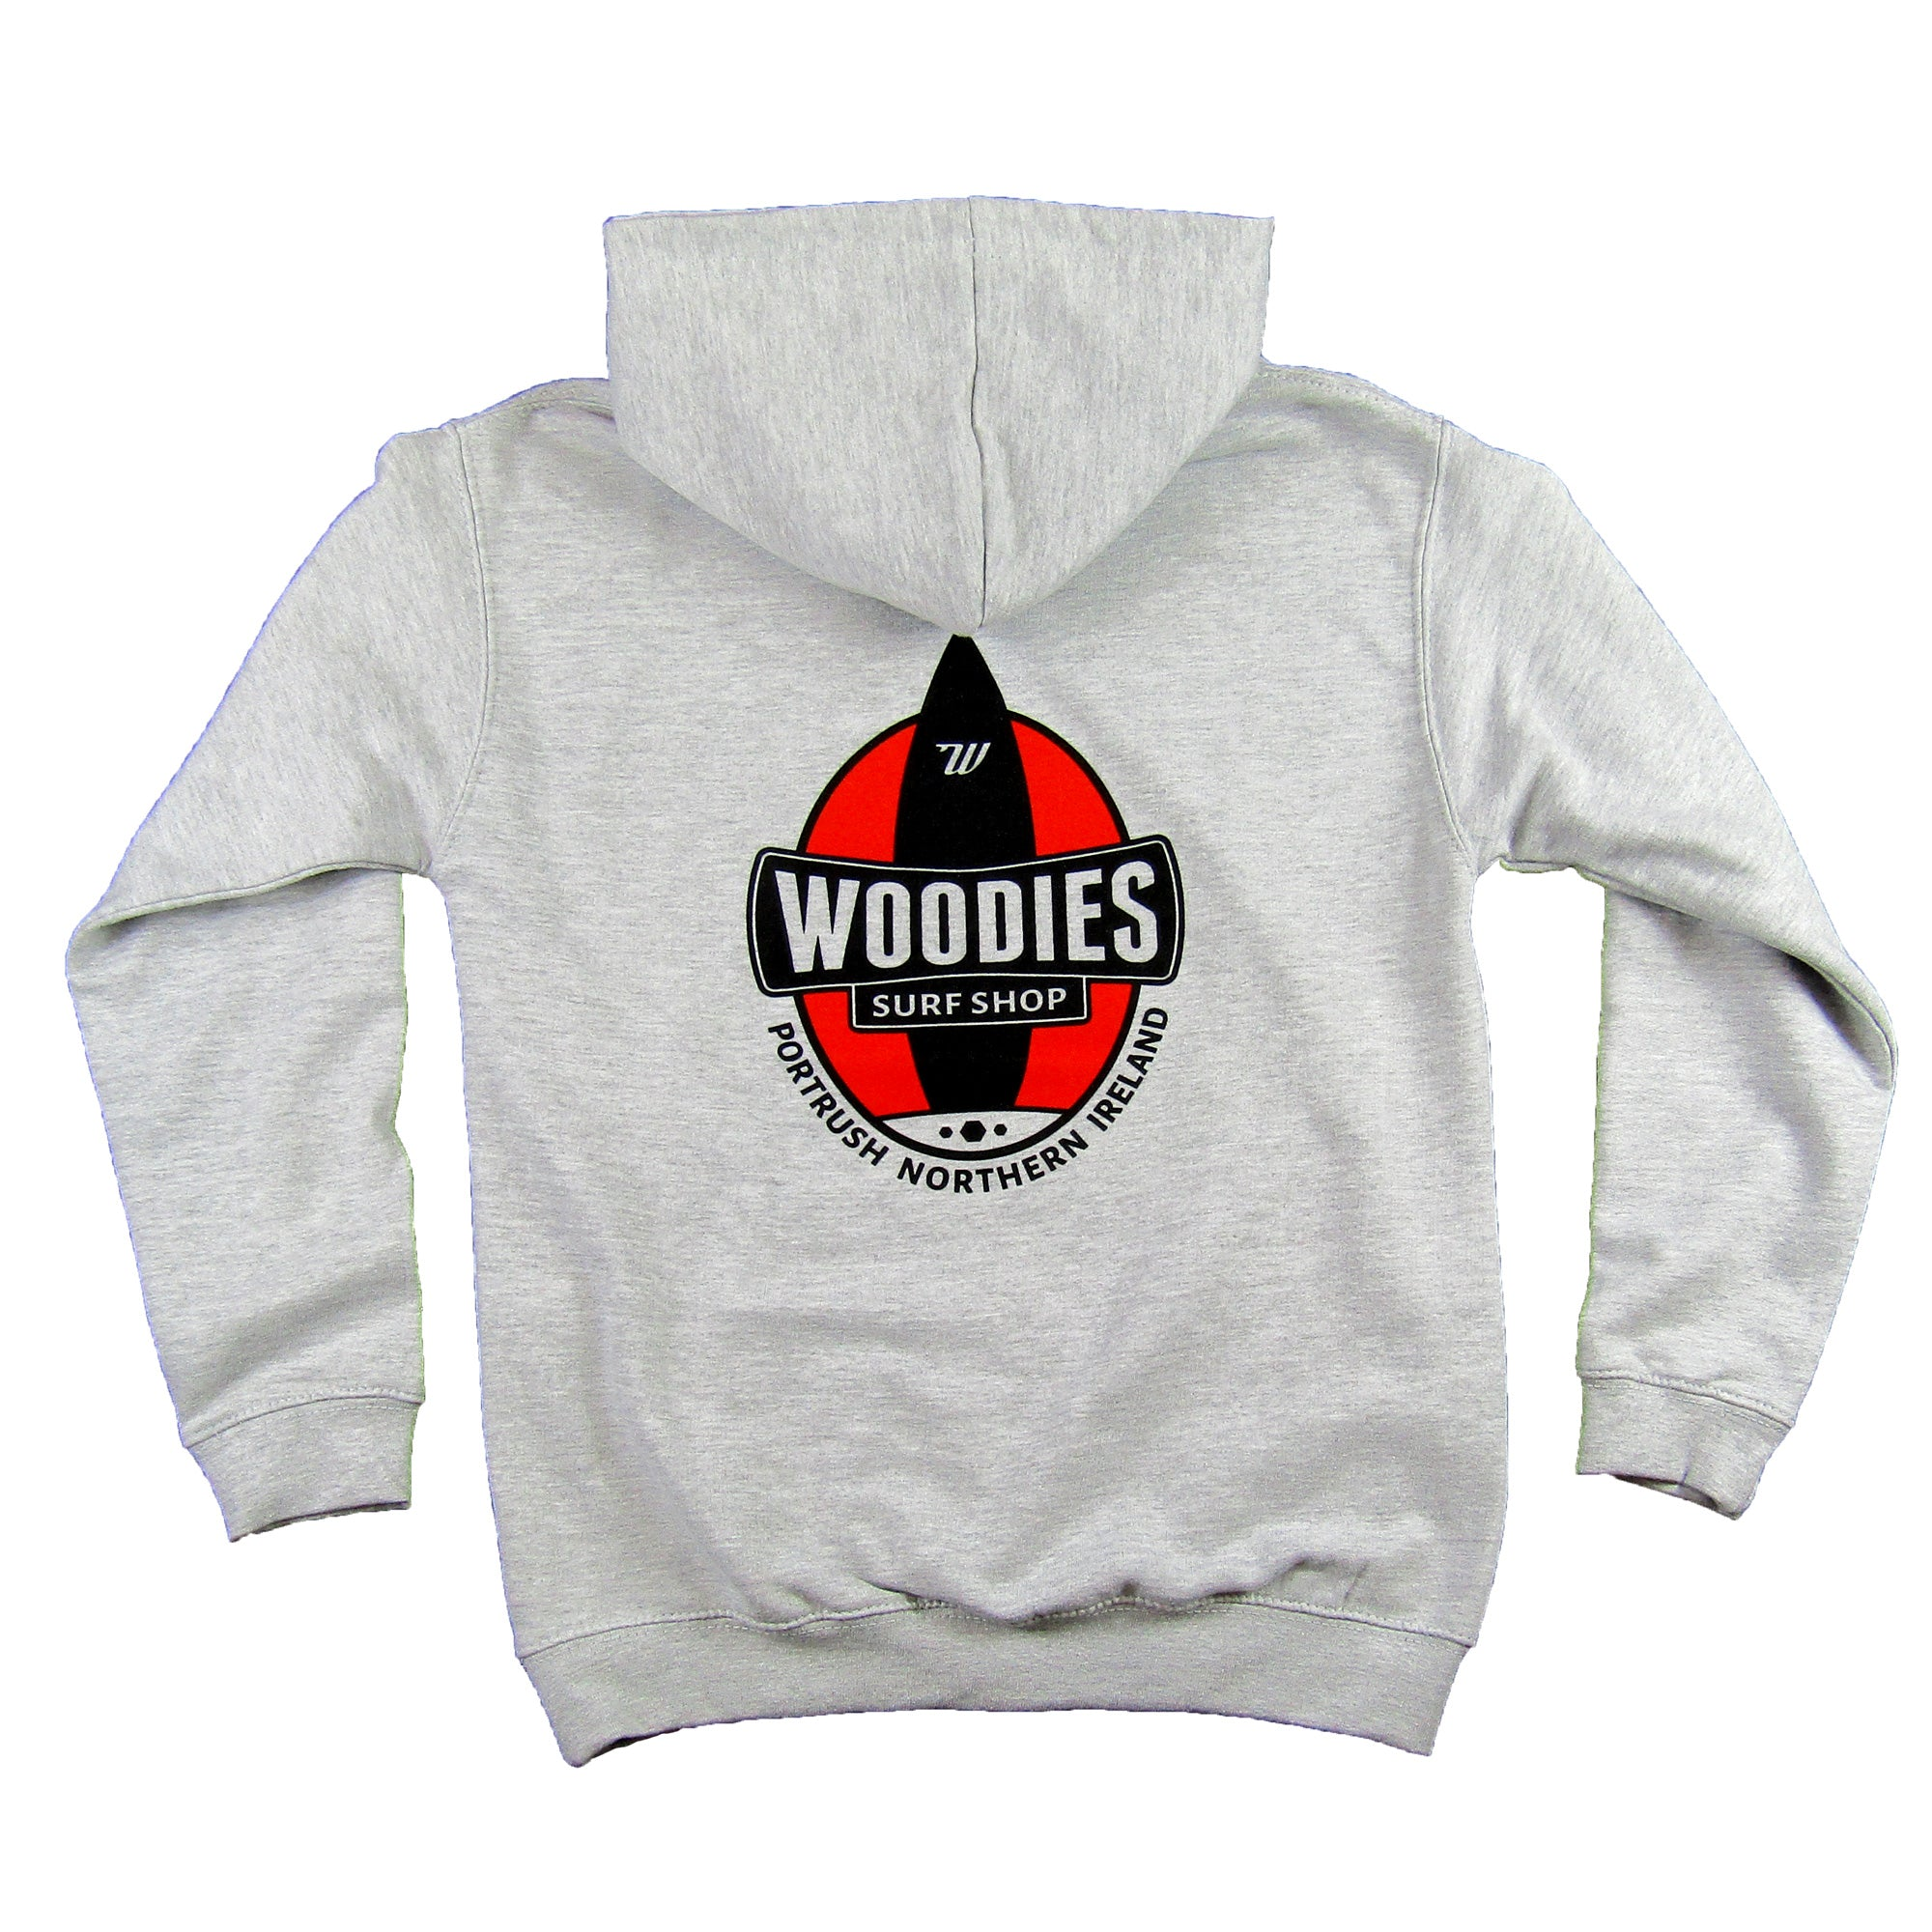 Kids Marl Grey Hoody - One Board Logo In Warm Red and White